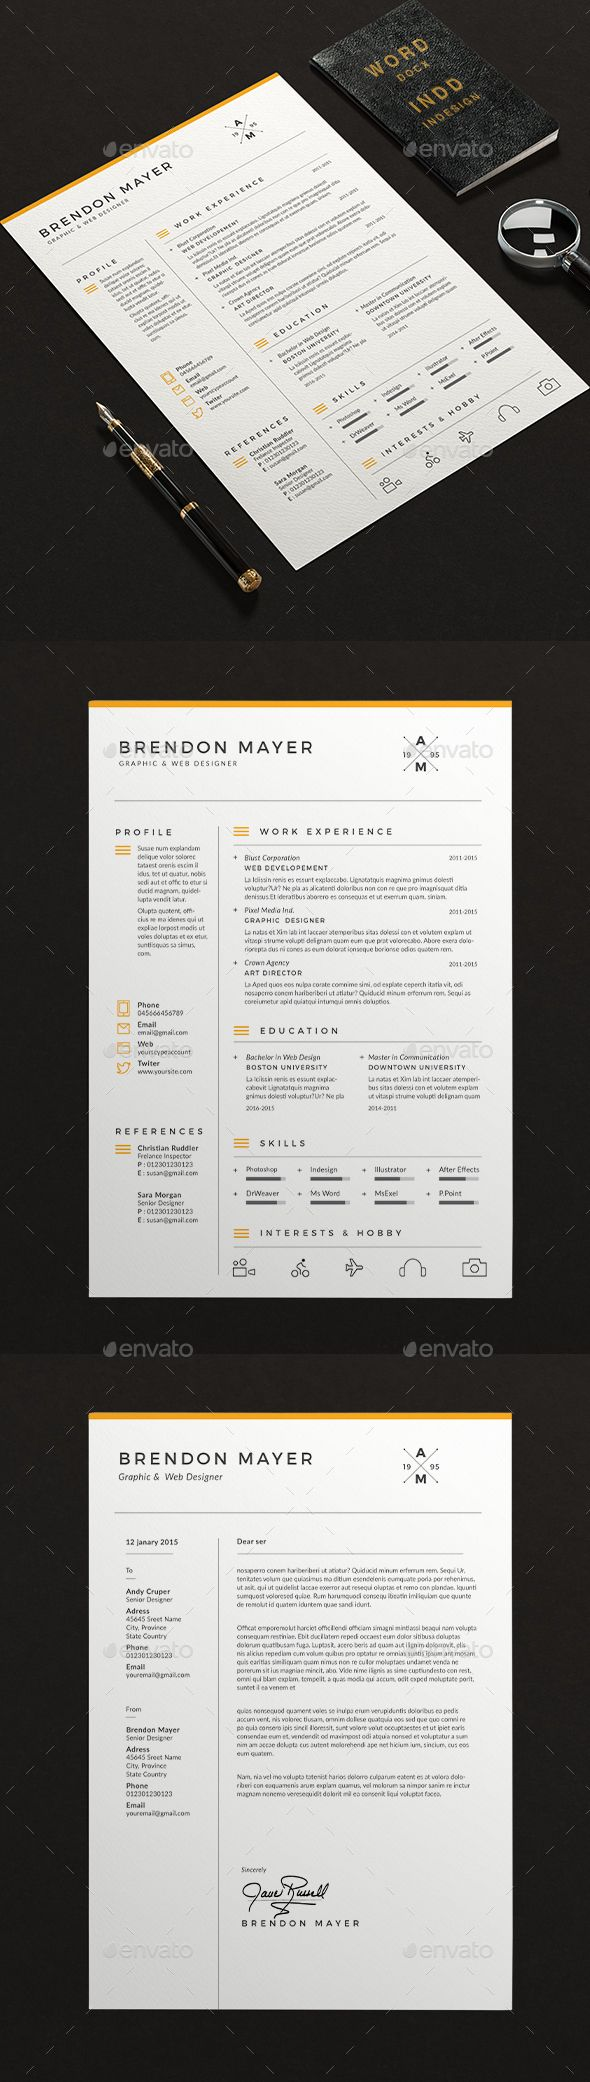 Clean Resume Word Template Indesign Indd Design Download Http